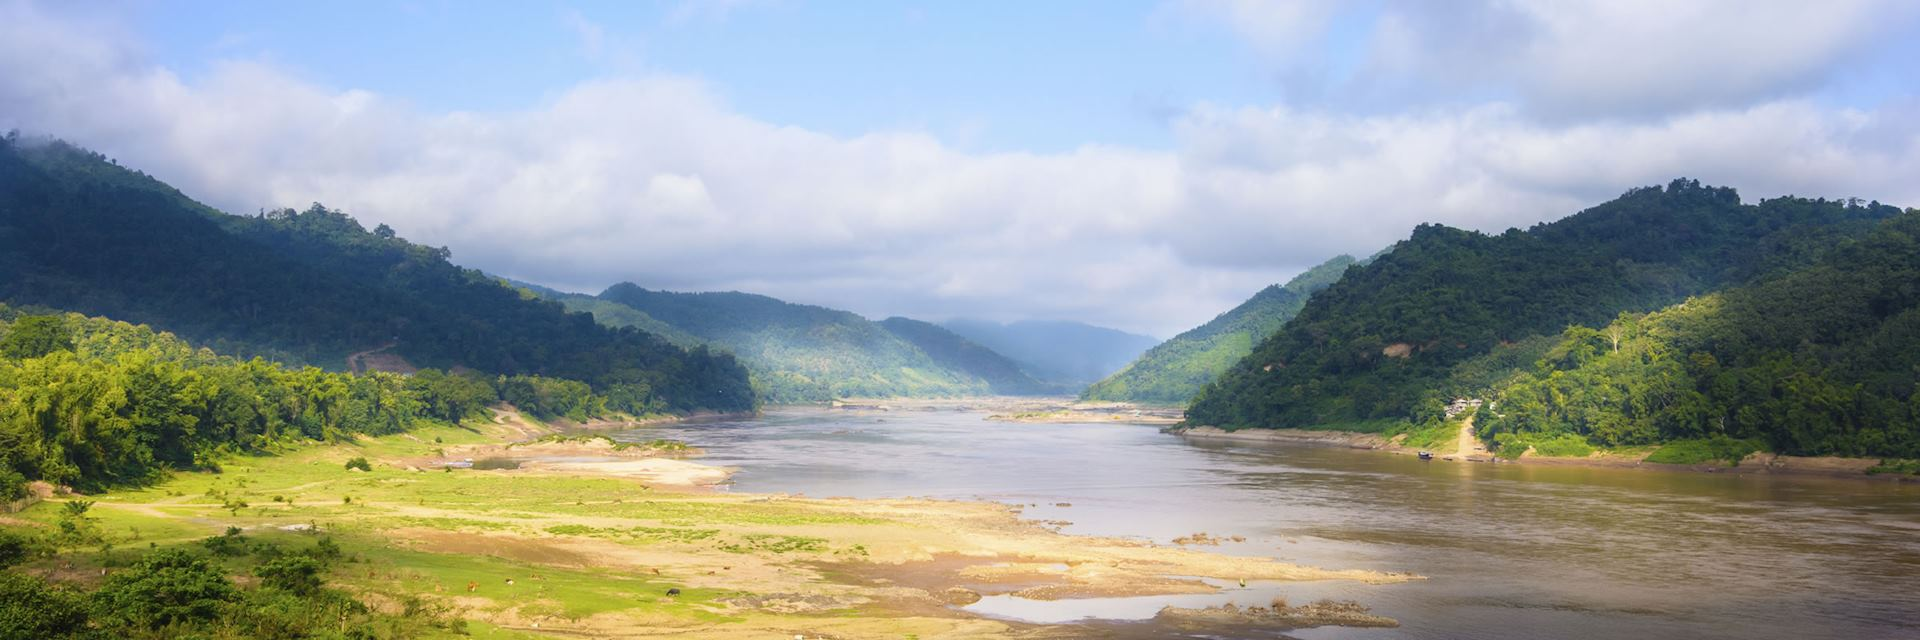 The Mekong River, in the Golden Triangle